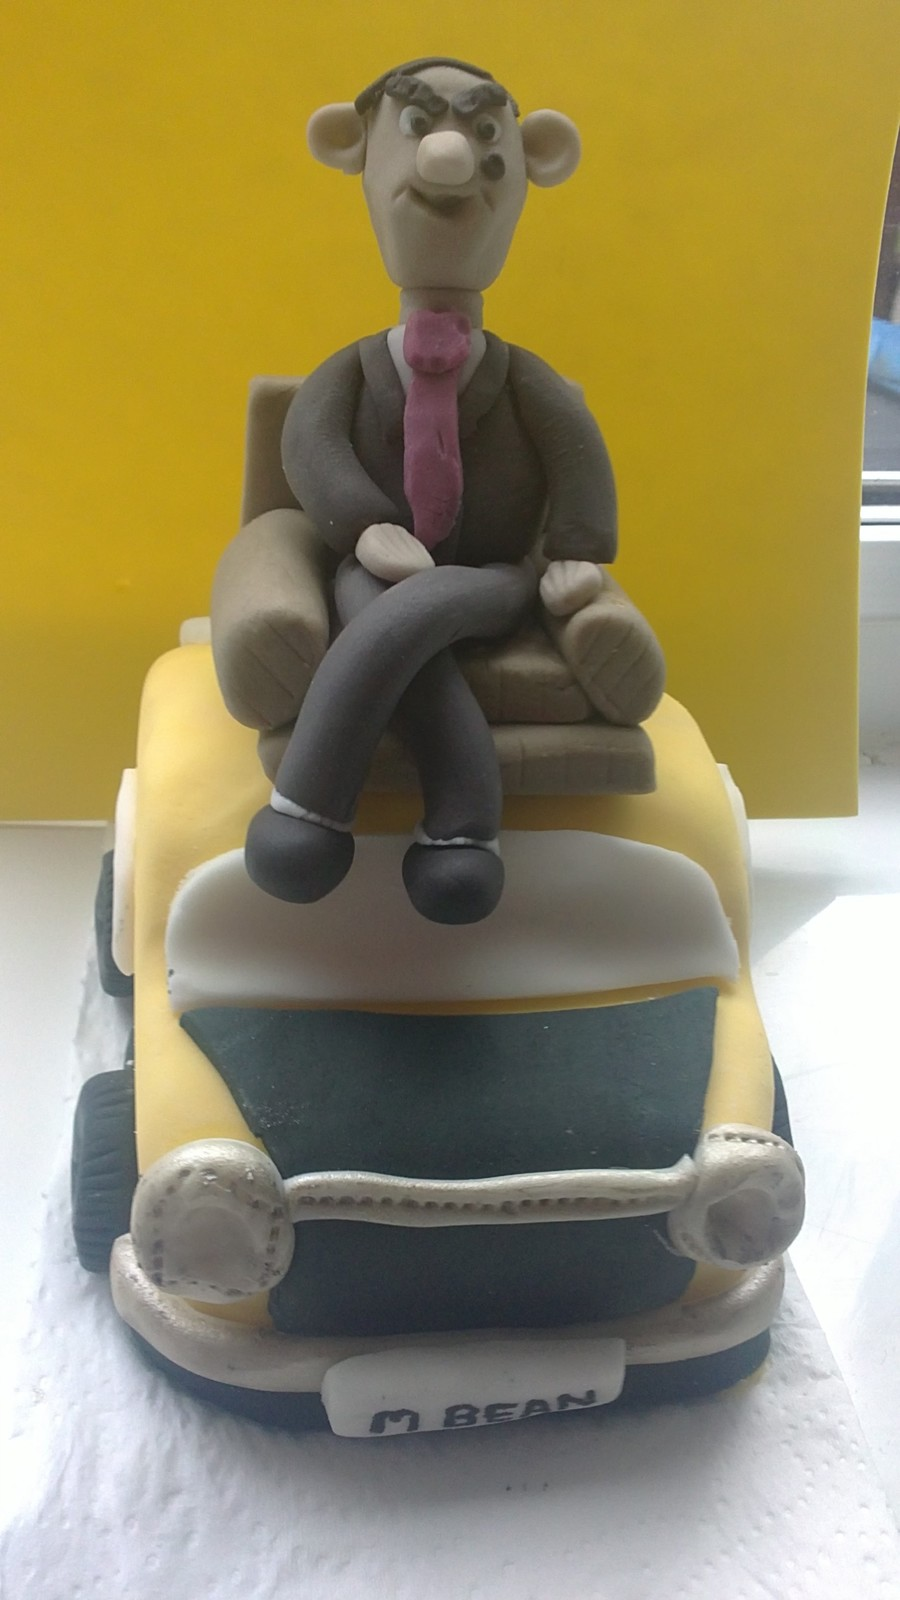 Mr Bean On Car Cake Topper on Cake Central